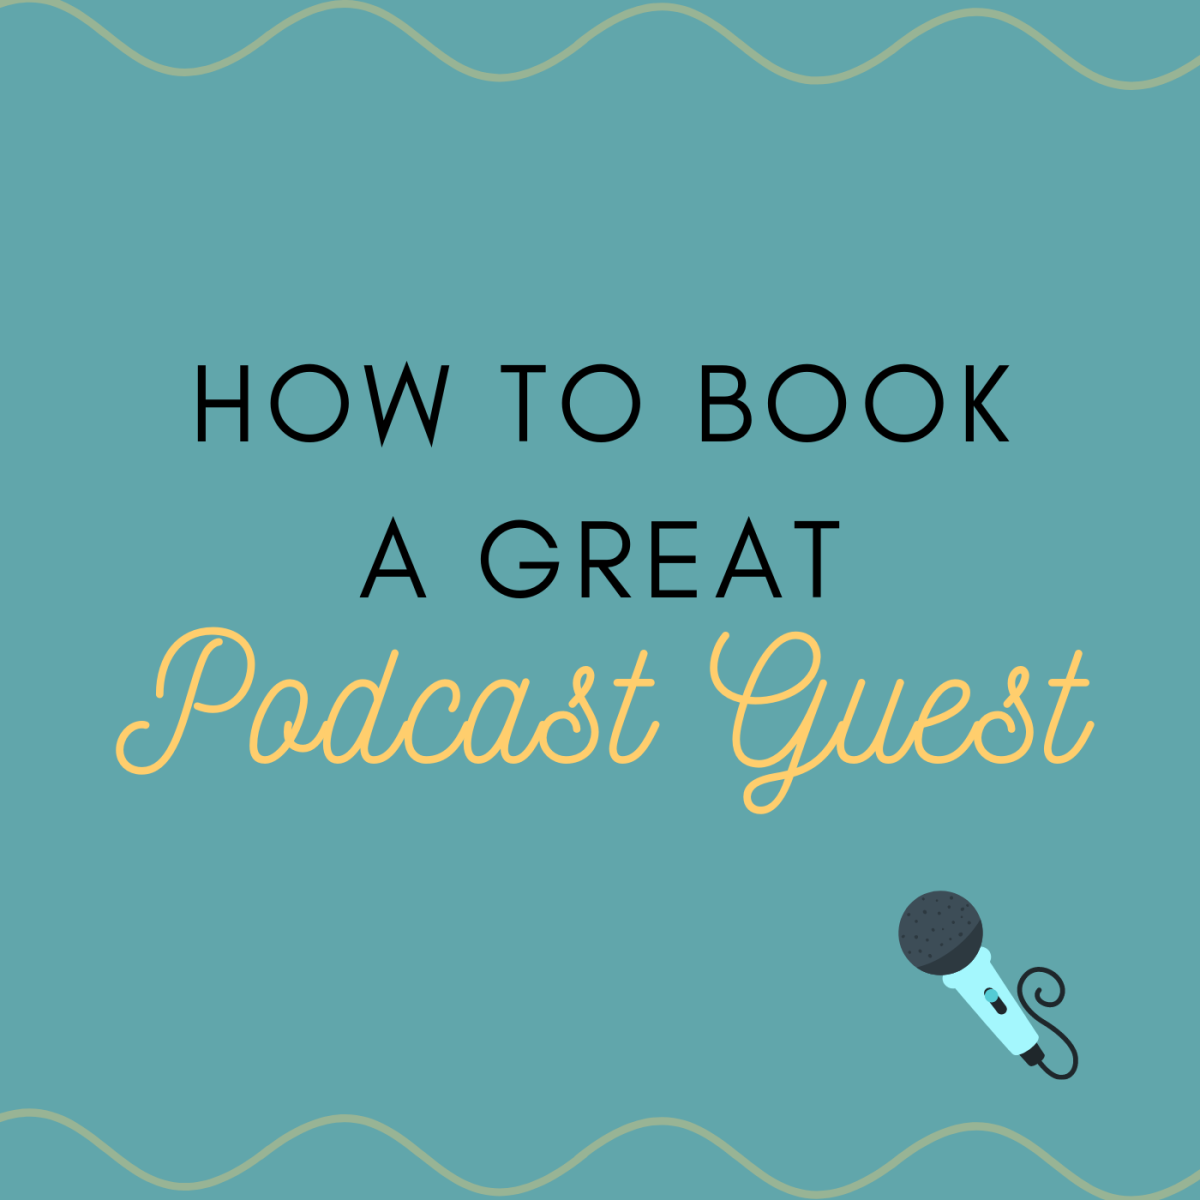 Follow these tips to ensure that your podcast guest is high quality.